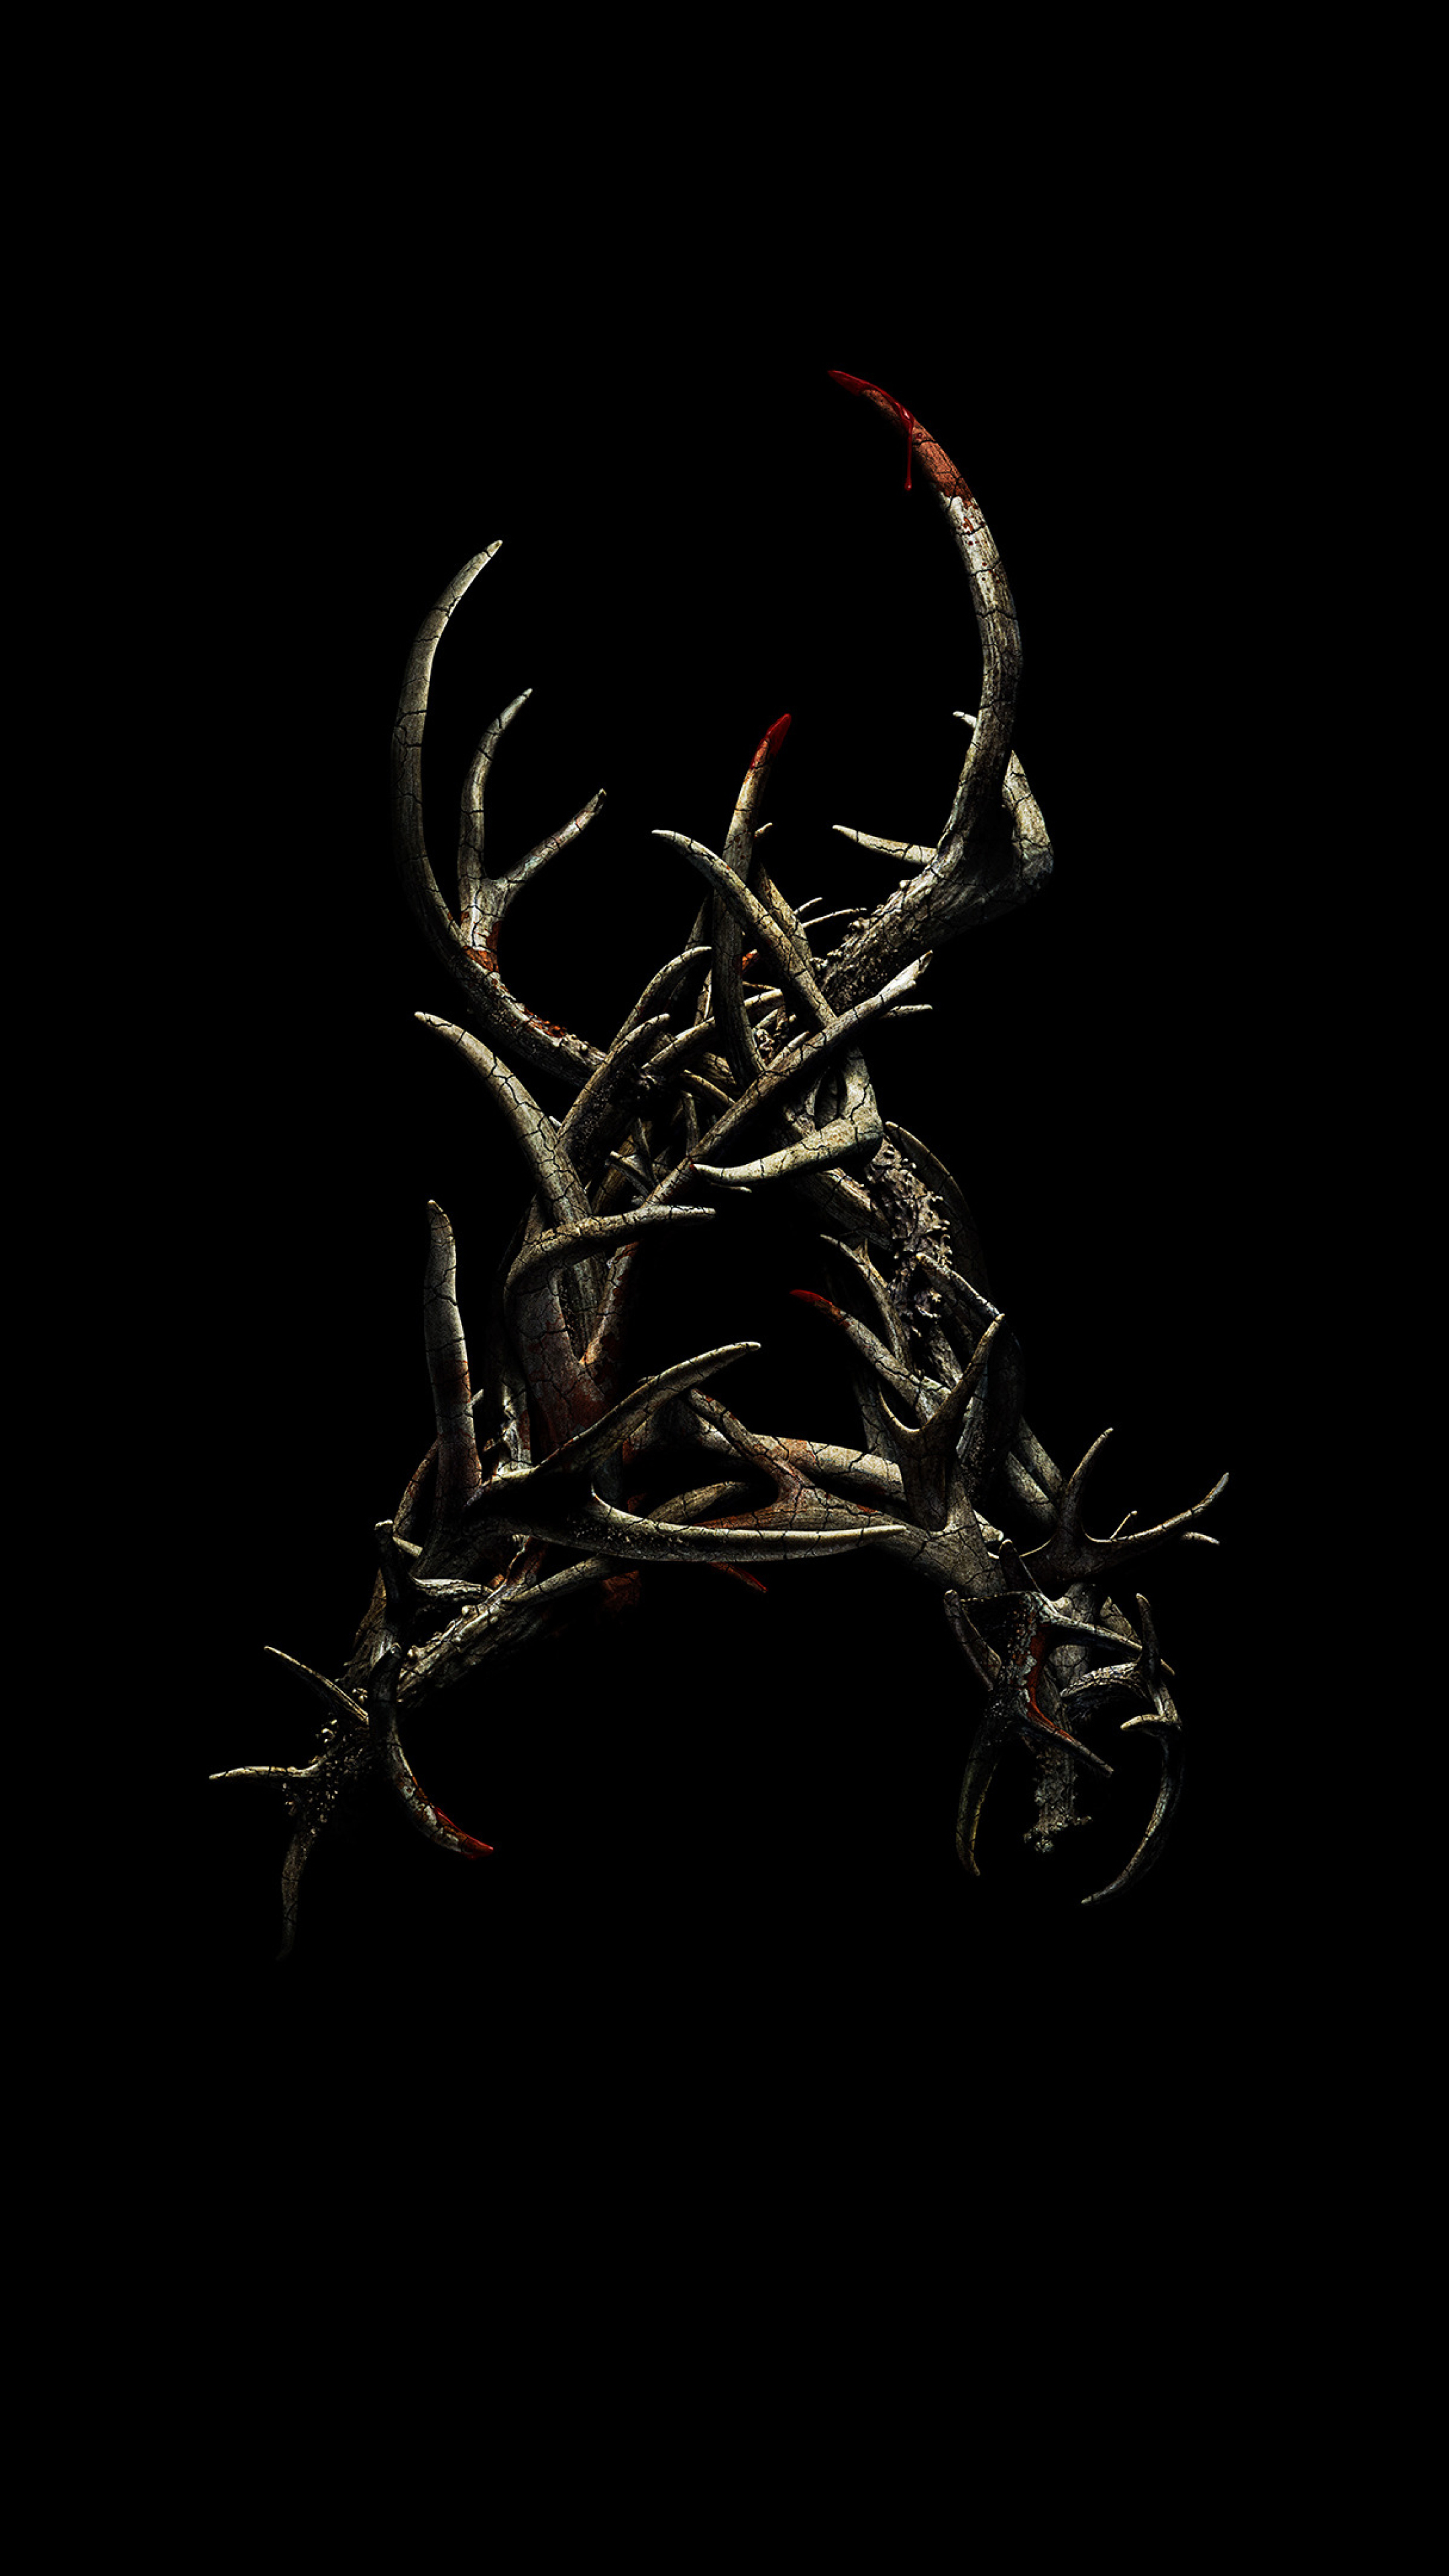 Antlers Movie Wallpaper in 2160x3840 Resolution